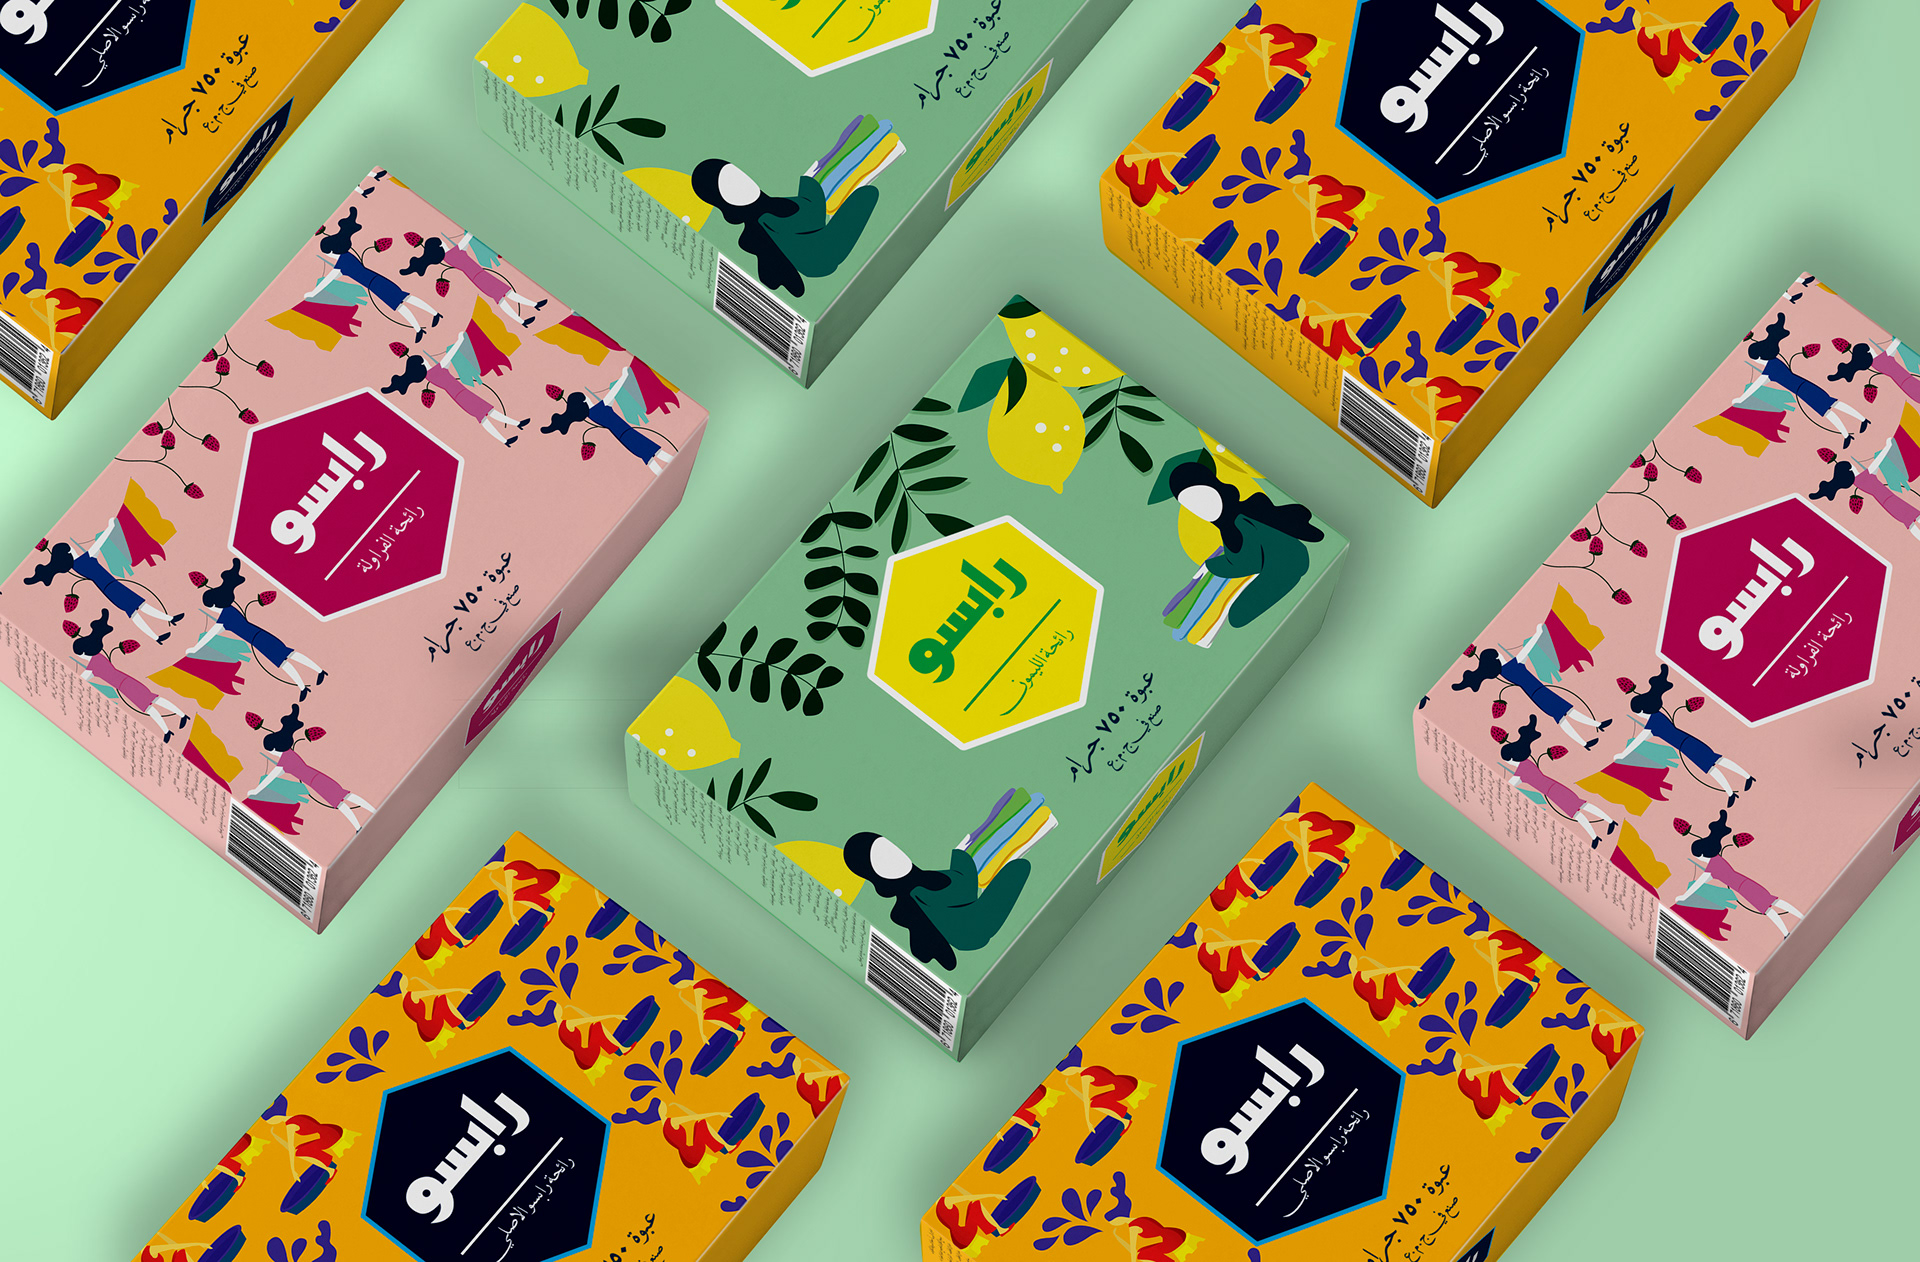 Brand Strategy and Packaging Redesign of Old Egyptian Detergent Brand from the 50's